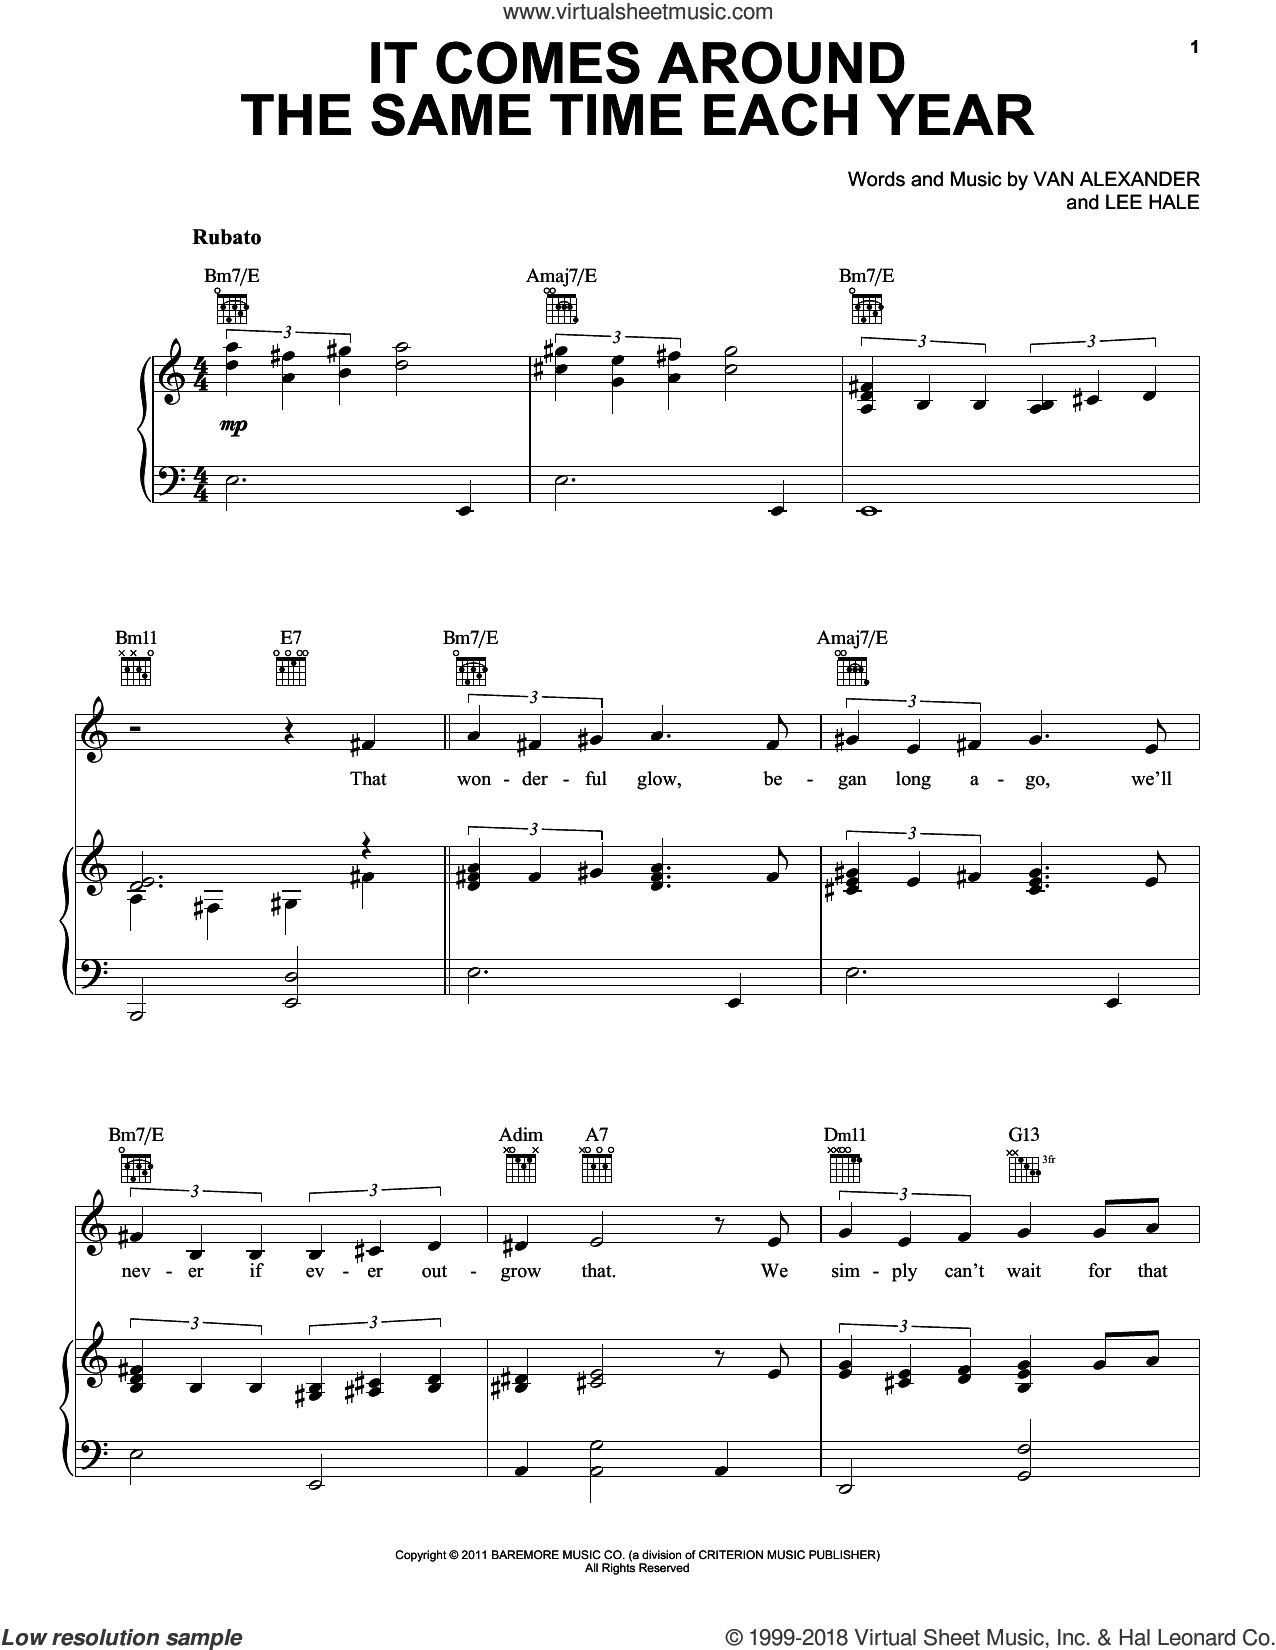 It Comes Around The Same Time Each Year sheet music for voice, piano or guitar by Michael Feinstein. Score Image Preview.